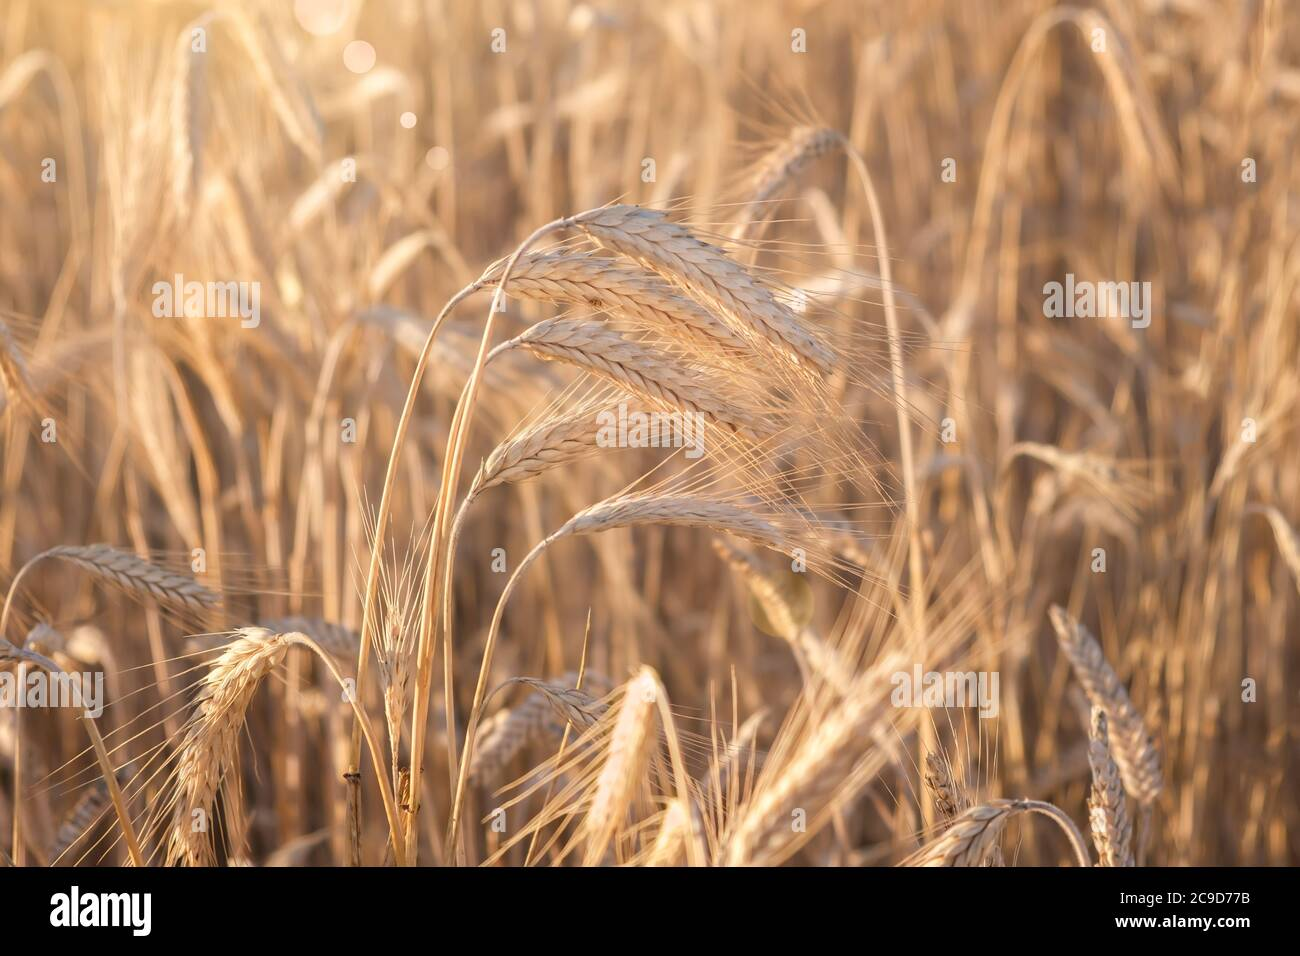 Wheat field. Ears of golden wheat close up. Beautiful Nature Sunset Landscape. Rural Scenery under Shining Sunlight. Background of ripening ears of wh Stock Photo